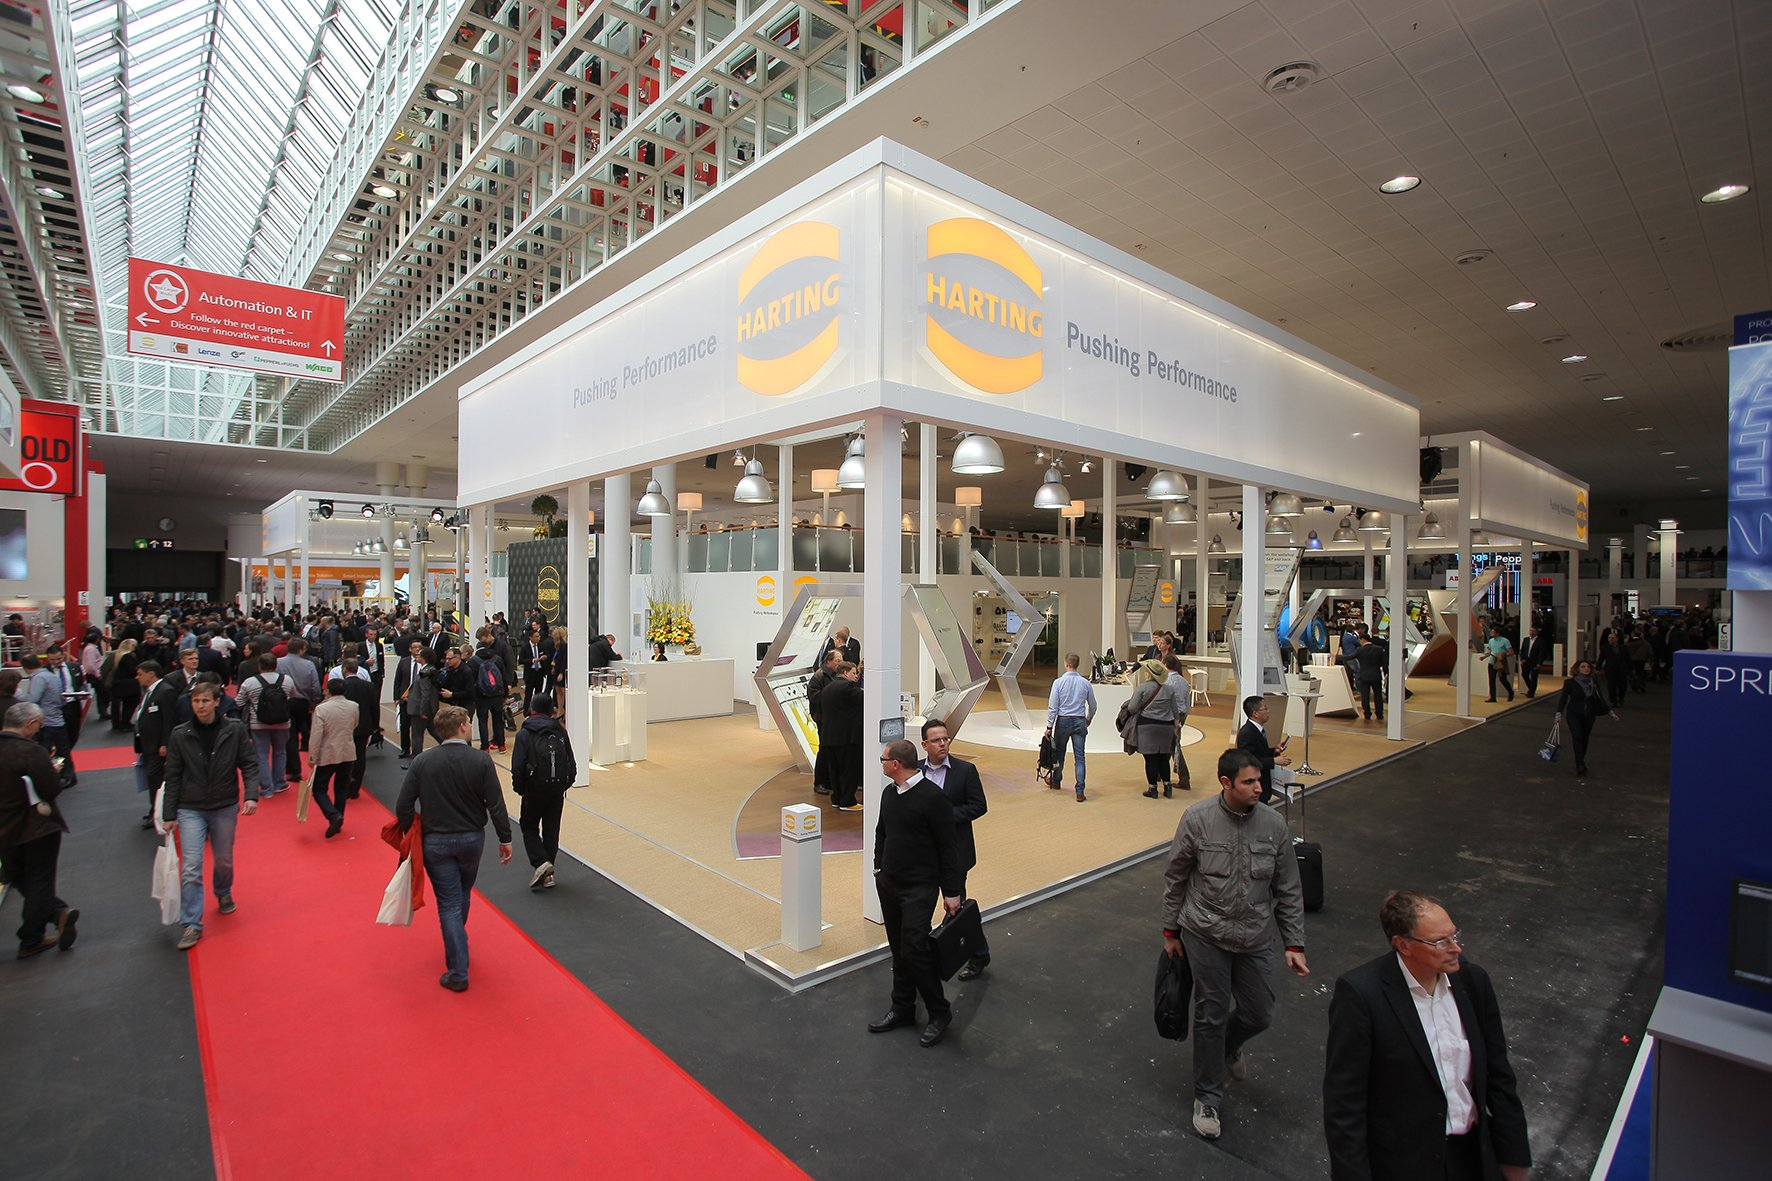 Outlet Hannover faithful exhibitors right from the start harting celebrates big